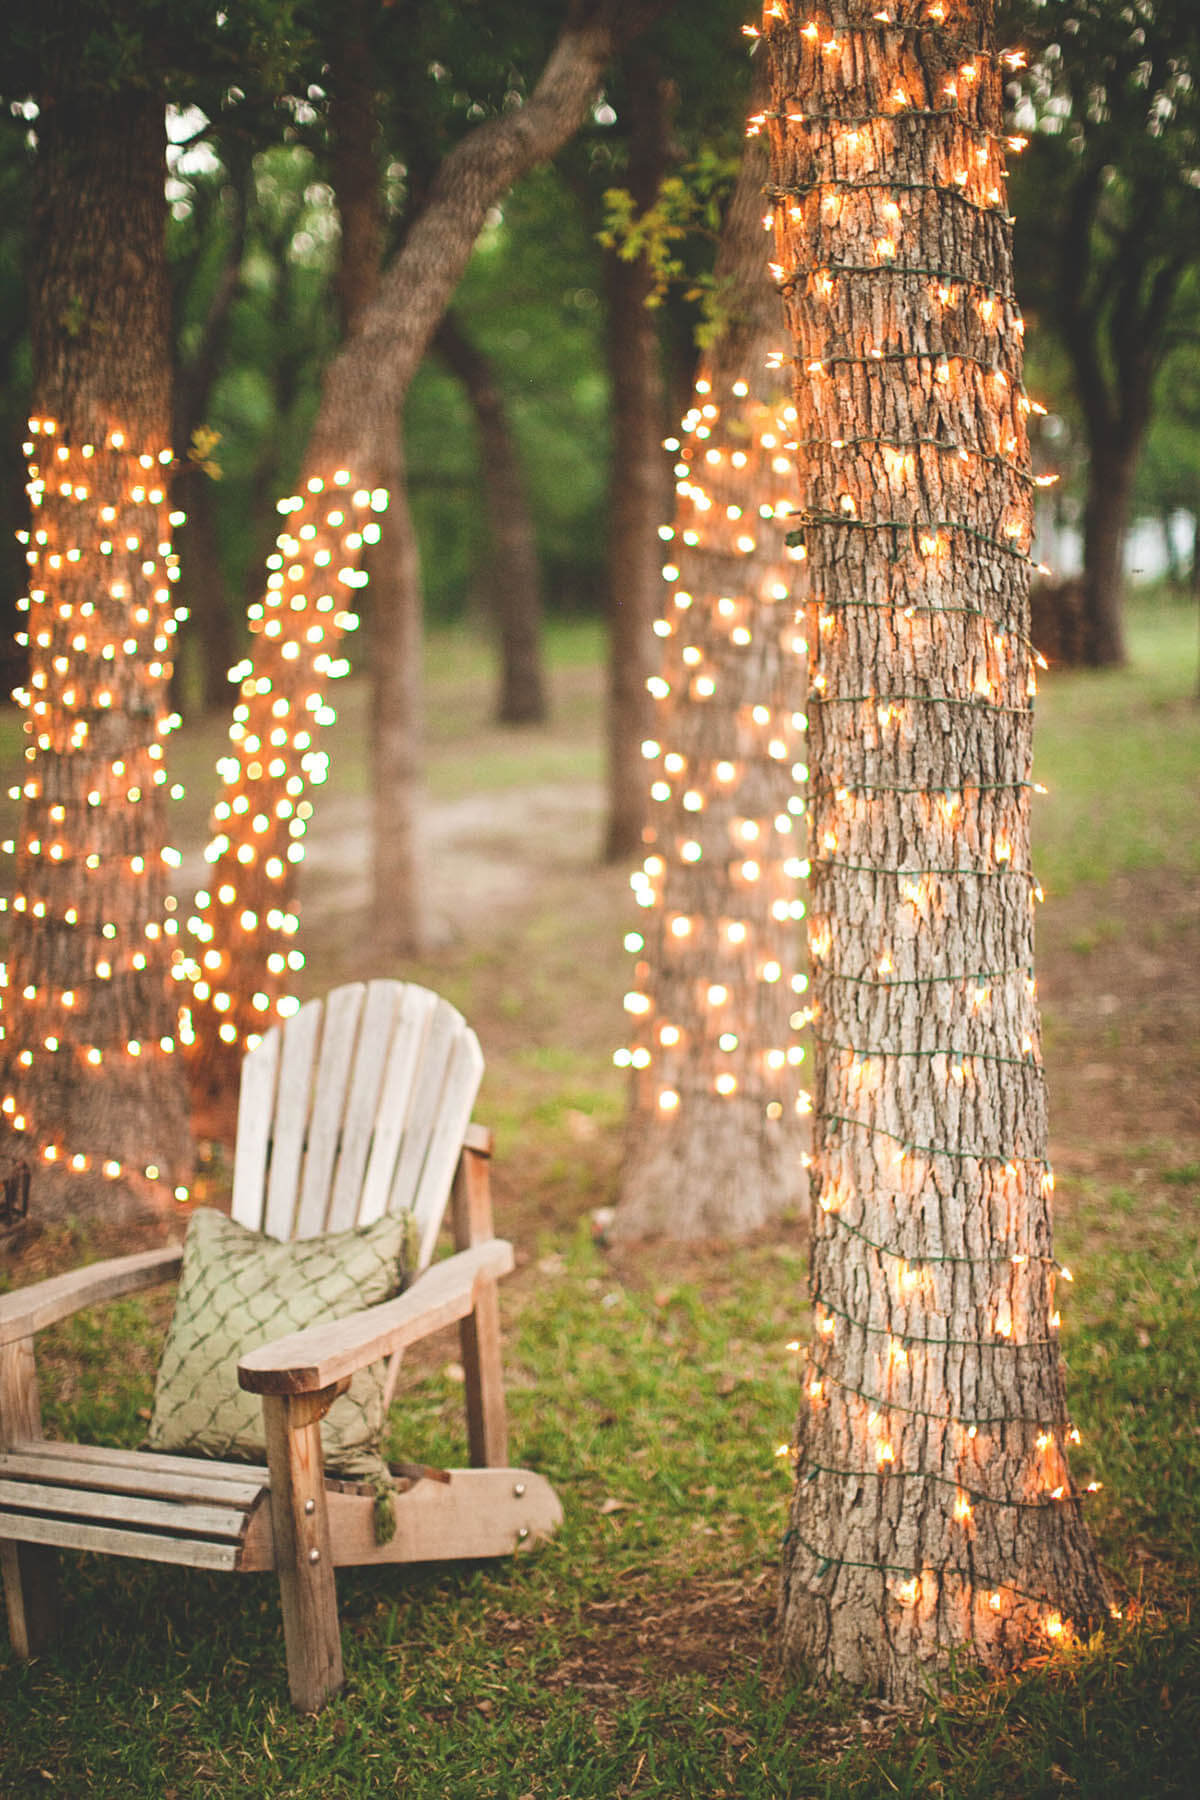 Vintage Outdoor Lighting Decor Ideas Ready To Inspire1 vintage outdoor lighting Vintage Outdoor Lighting Decor Ideas Ready To Inspire Vintage Outdoor Lighting Decor Ideas Ready To Inspire1